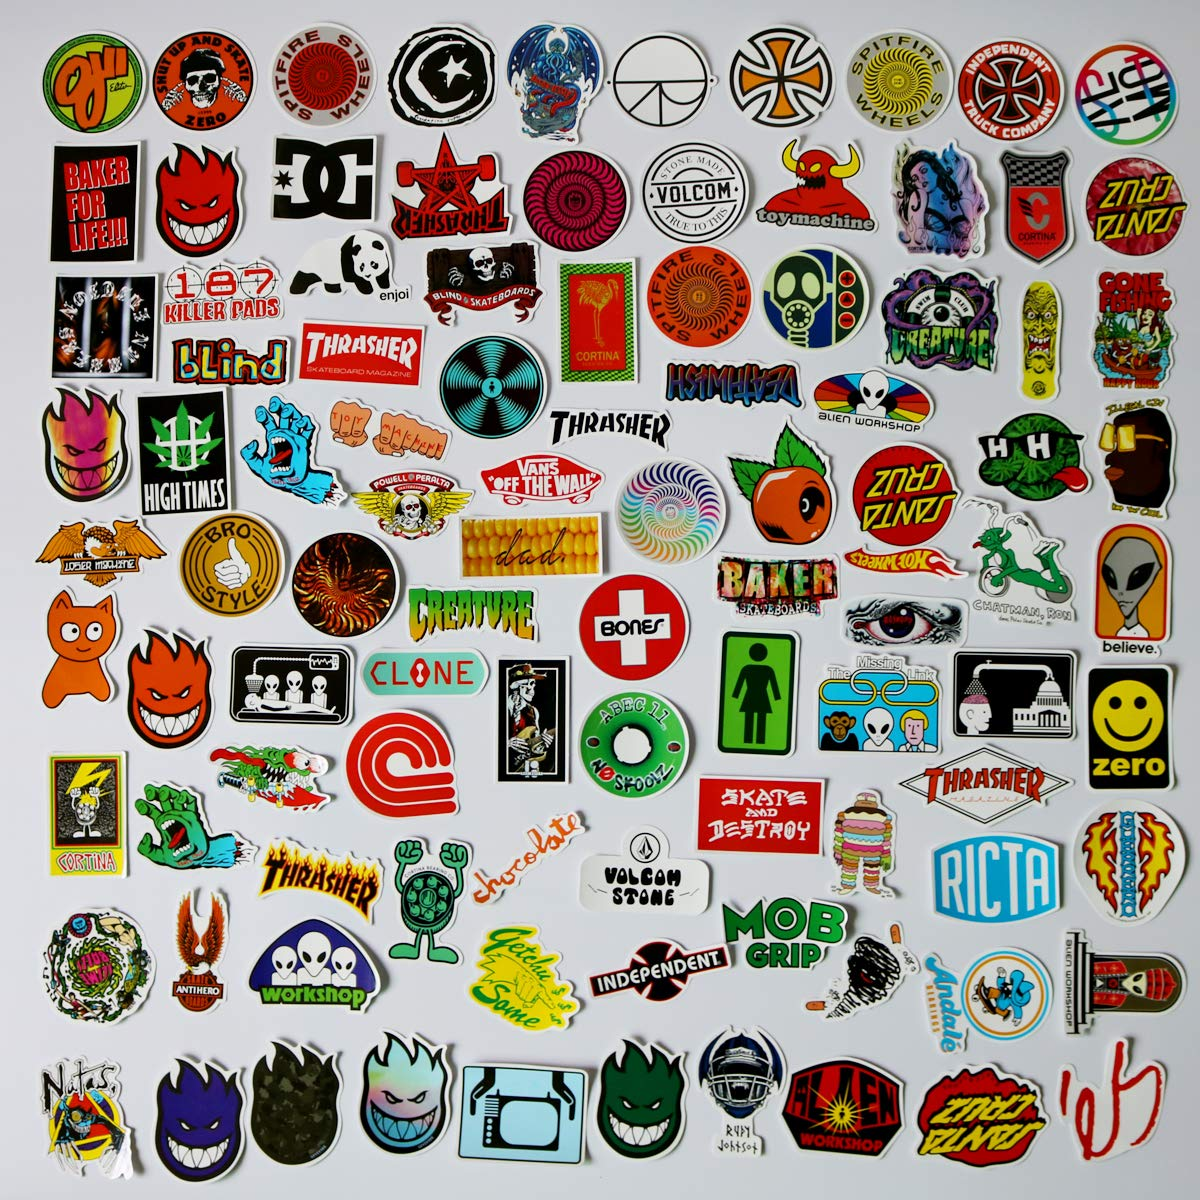 Brand logo sticker pack 100pcs car stickers motorcycle bicycle skateboard luggage decal graffiti patches skateboard stickers for laptop uv resistant